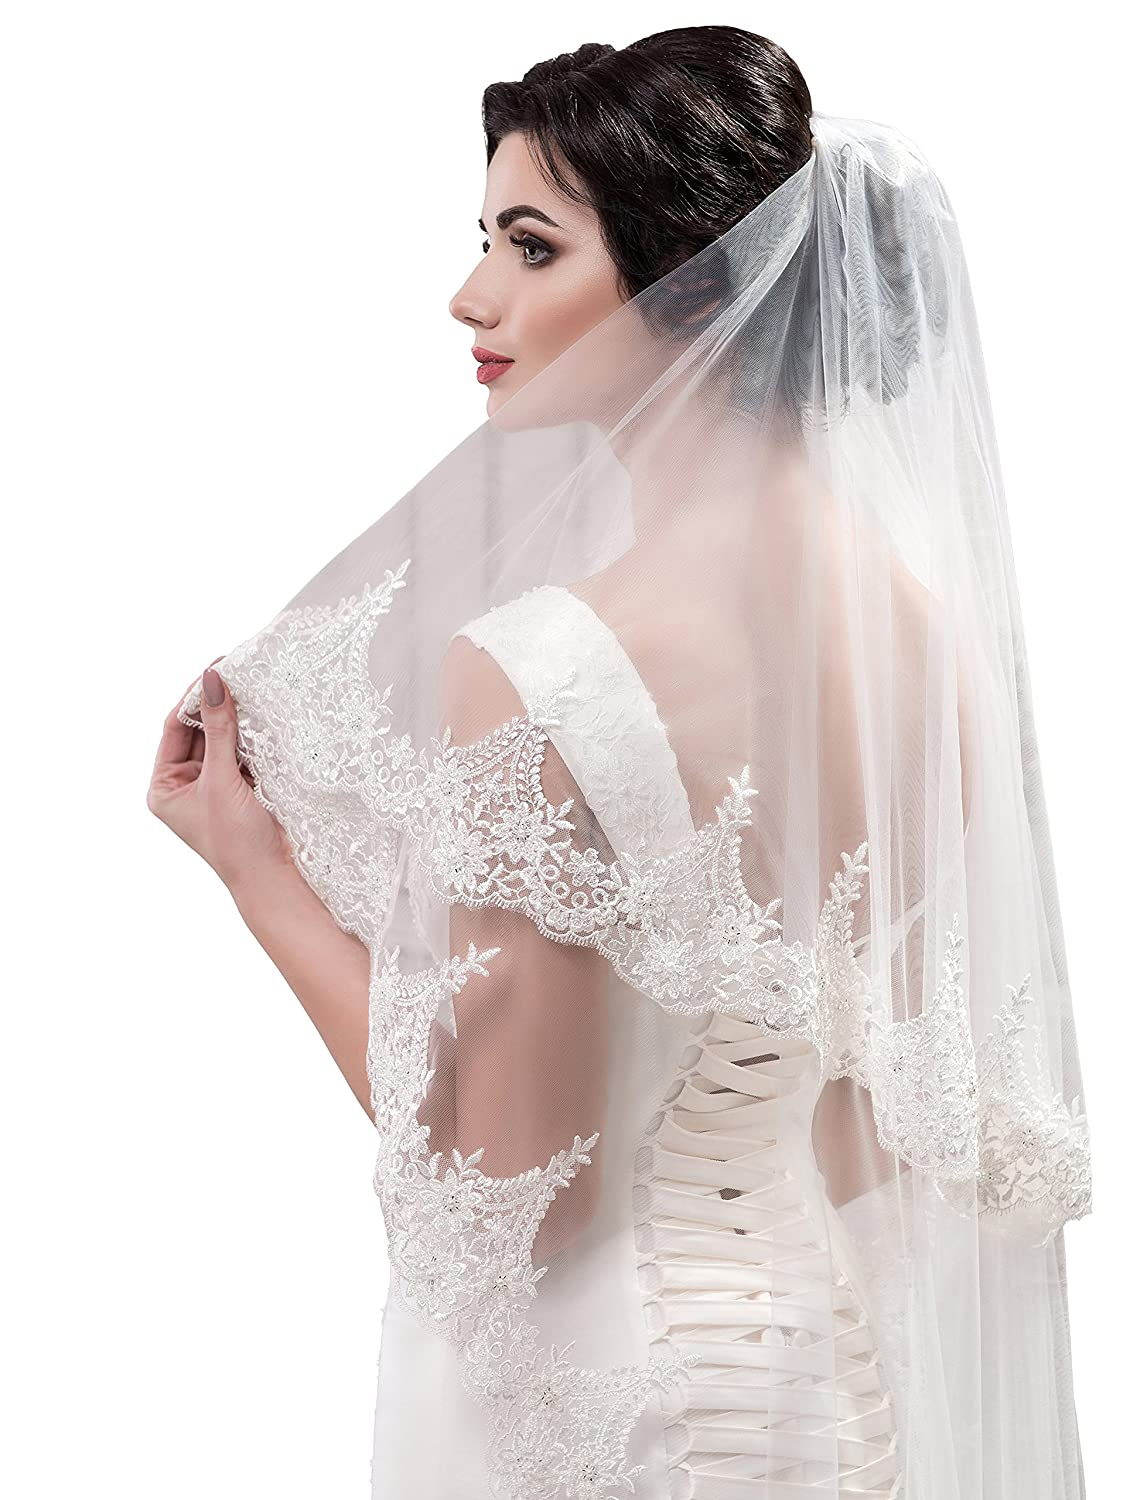 Bridal long chapel wedding Veil with comb Molly from NYC Bride collection ivory